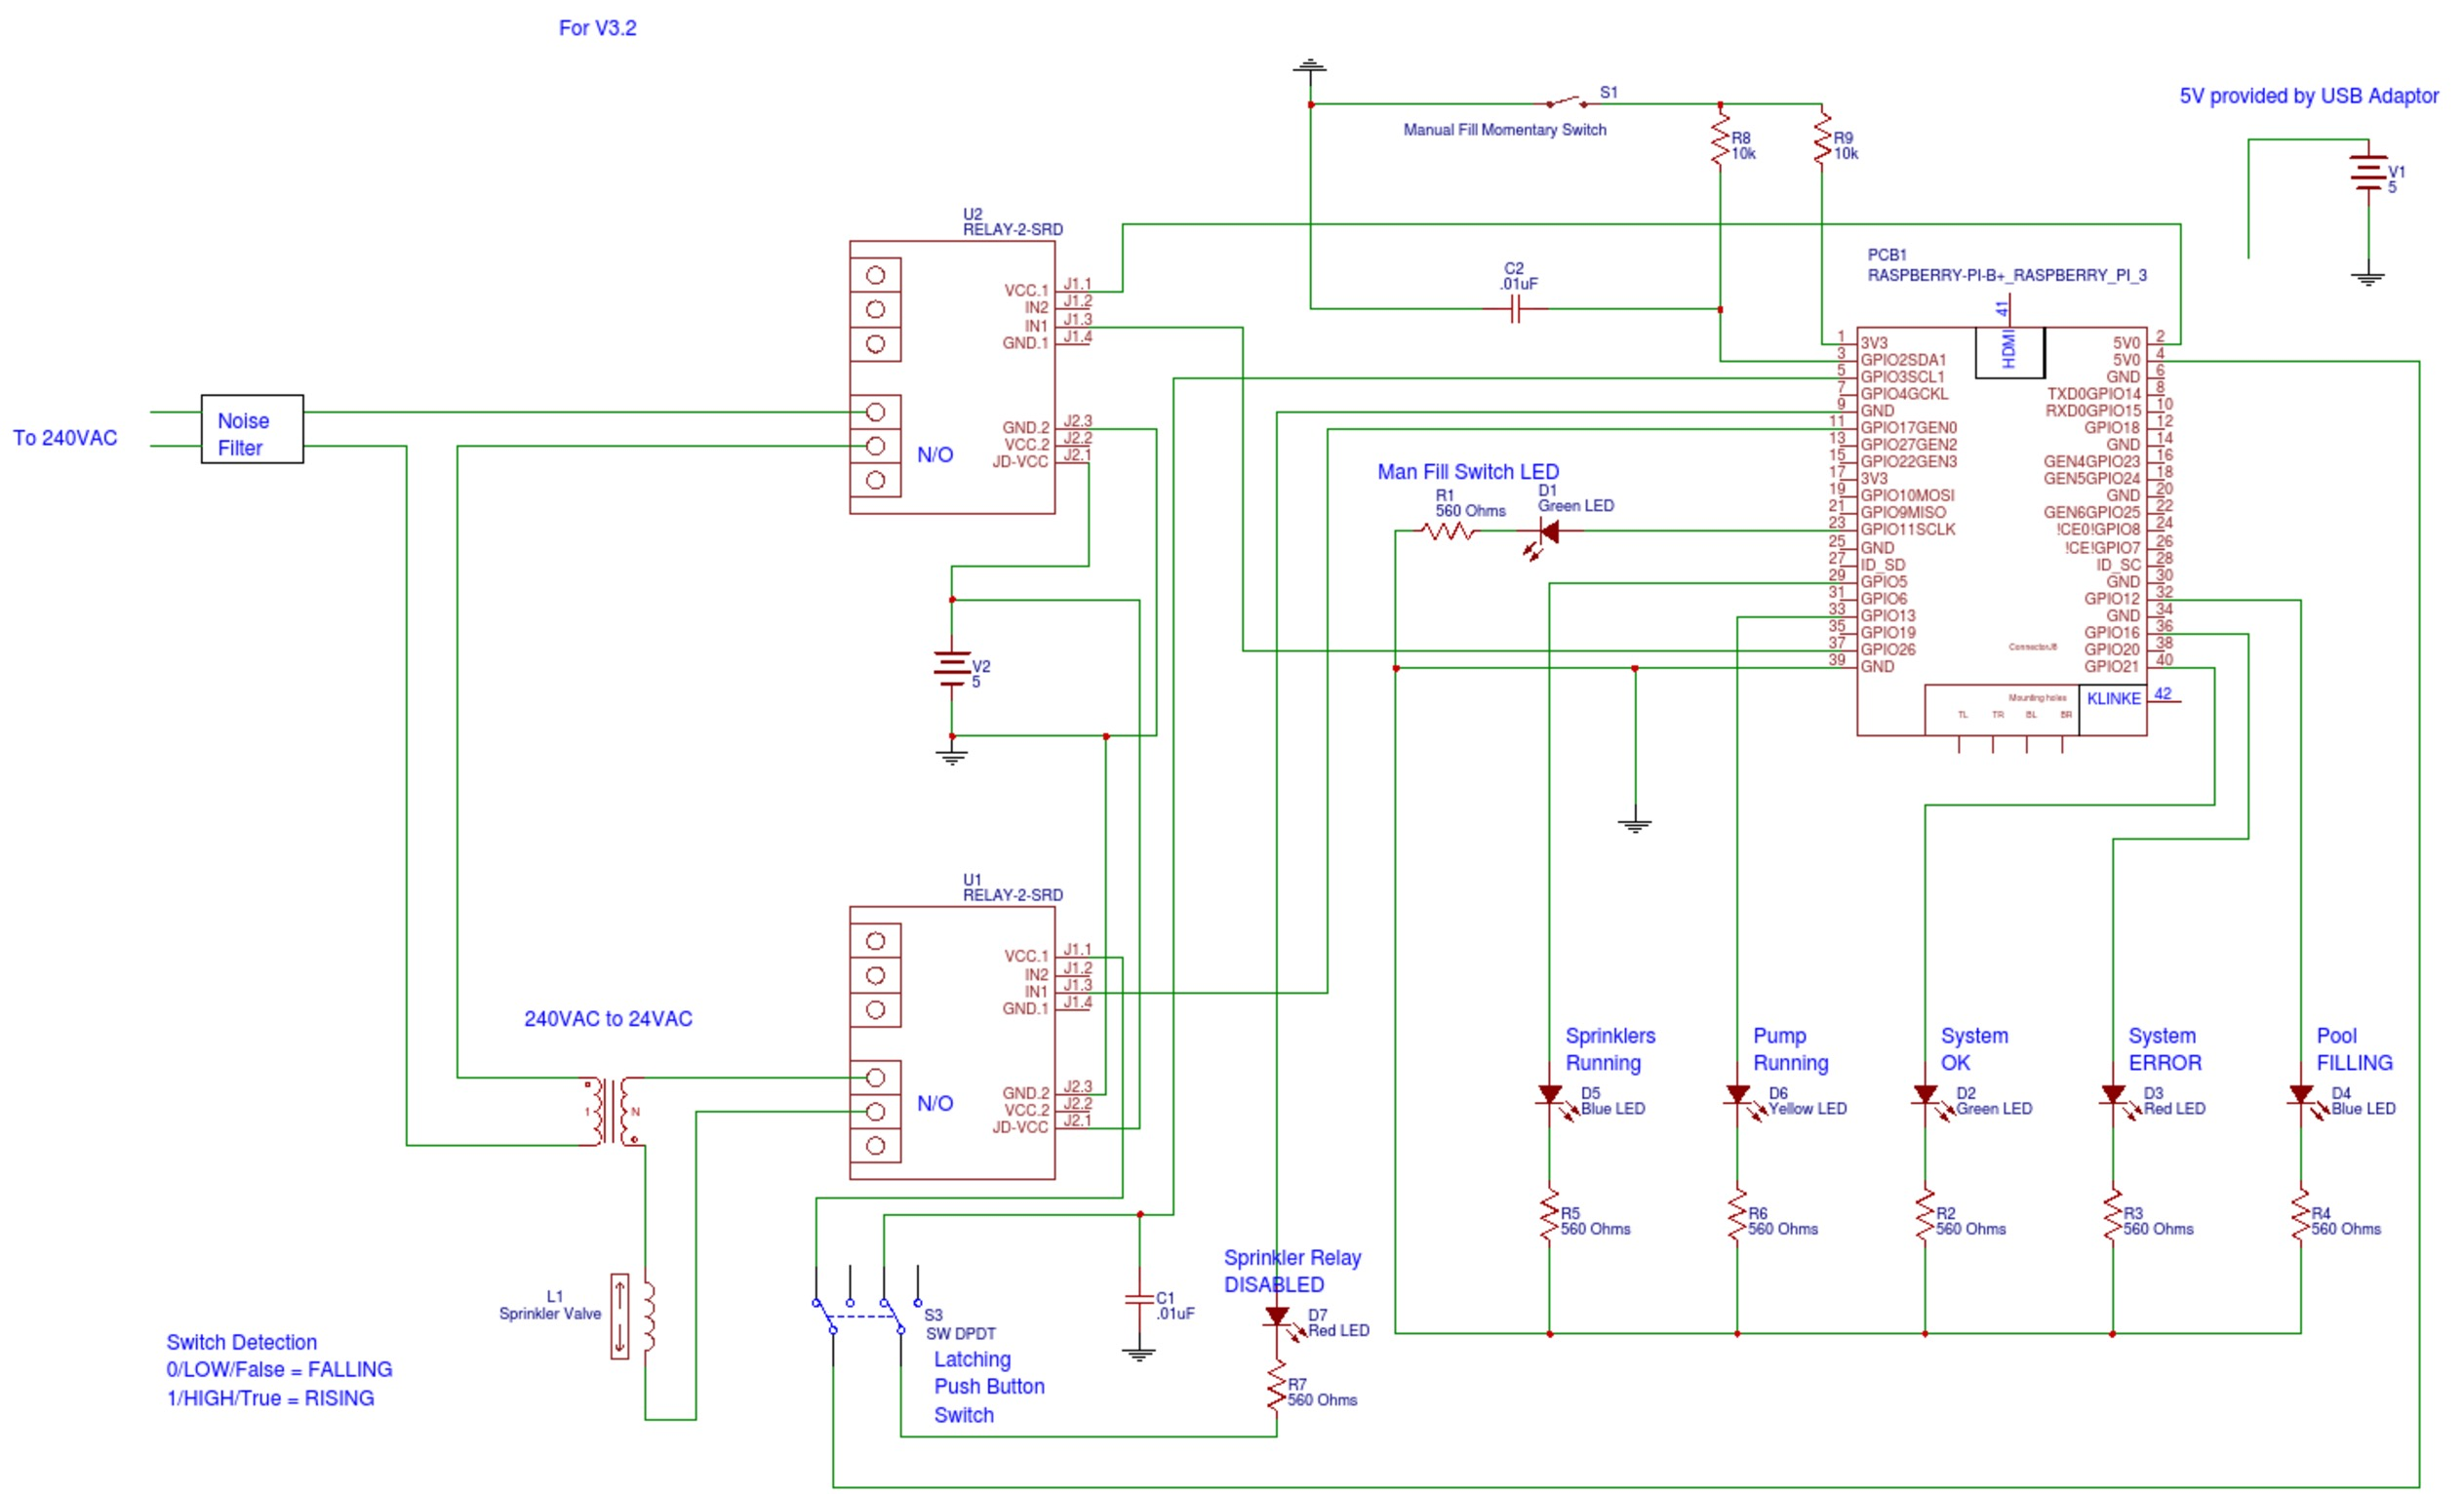 Pool Fill Control Circuit Breaker Box Wiring Diagram Additionally Sprinkler Pump Start V3 2 Pi3 Pfc Mhlfwf7bip